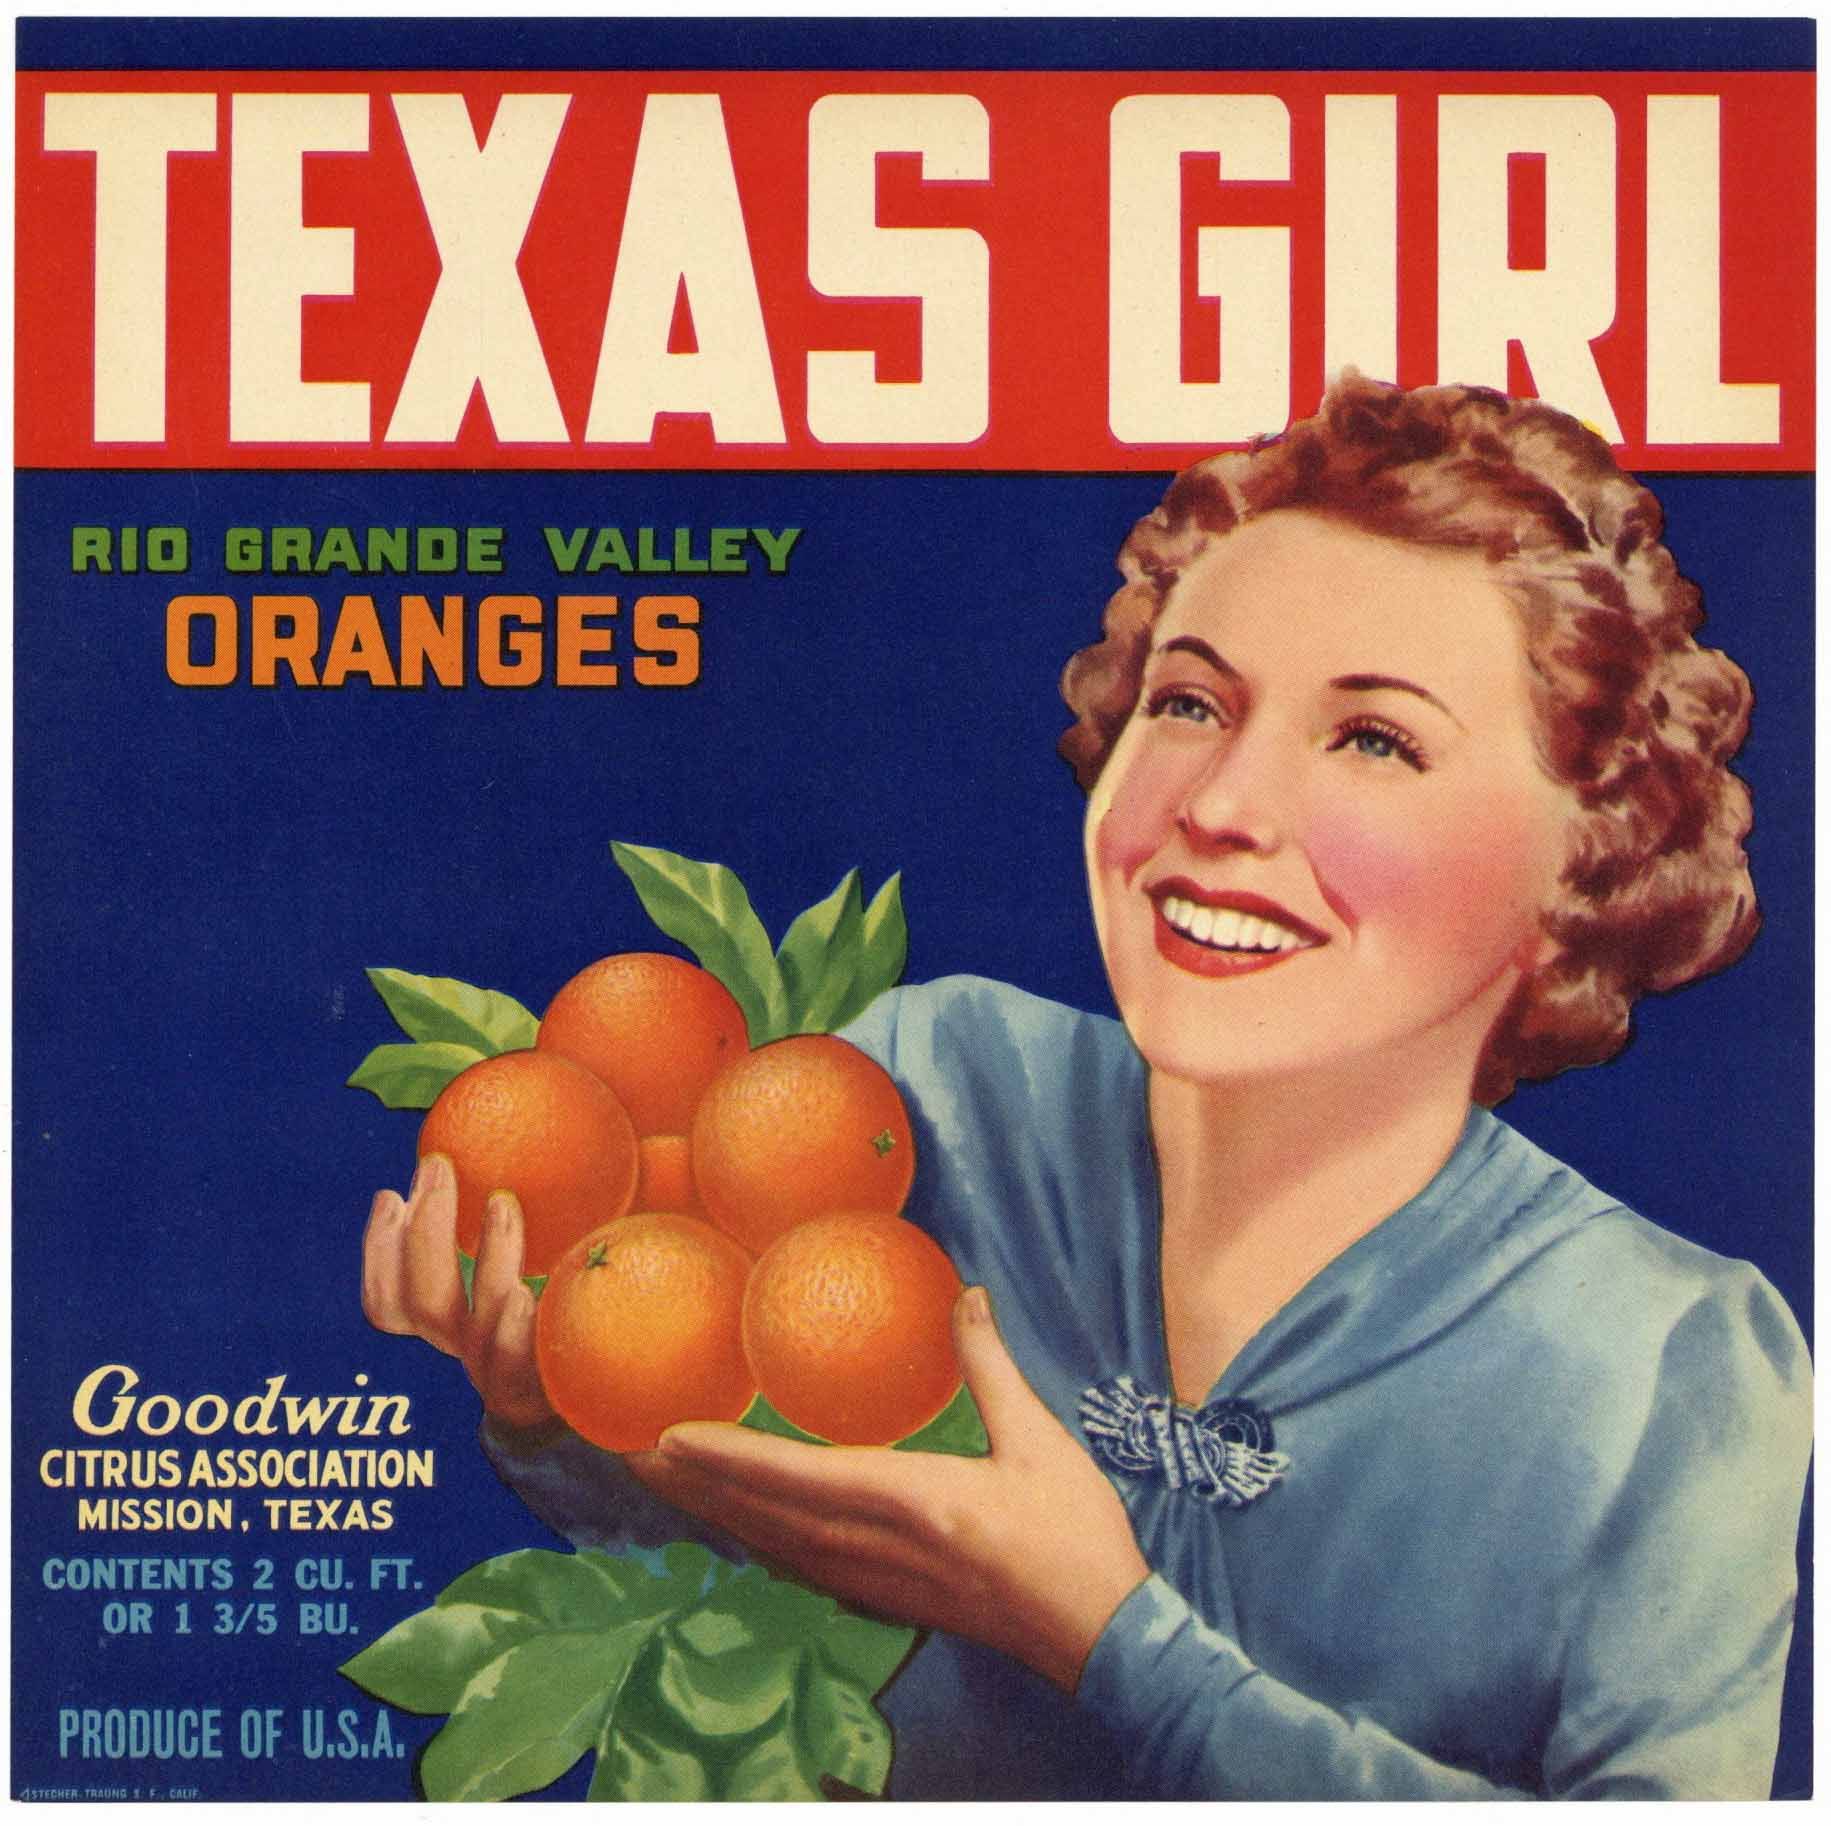 Texas Girl Brand Vintage Mission Texas Orange Crate Label